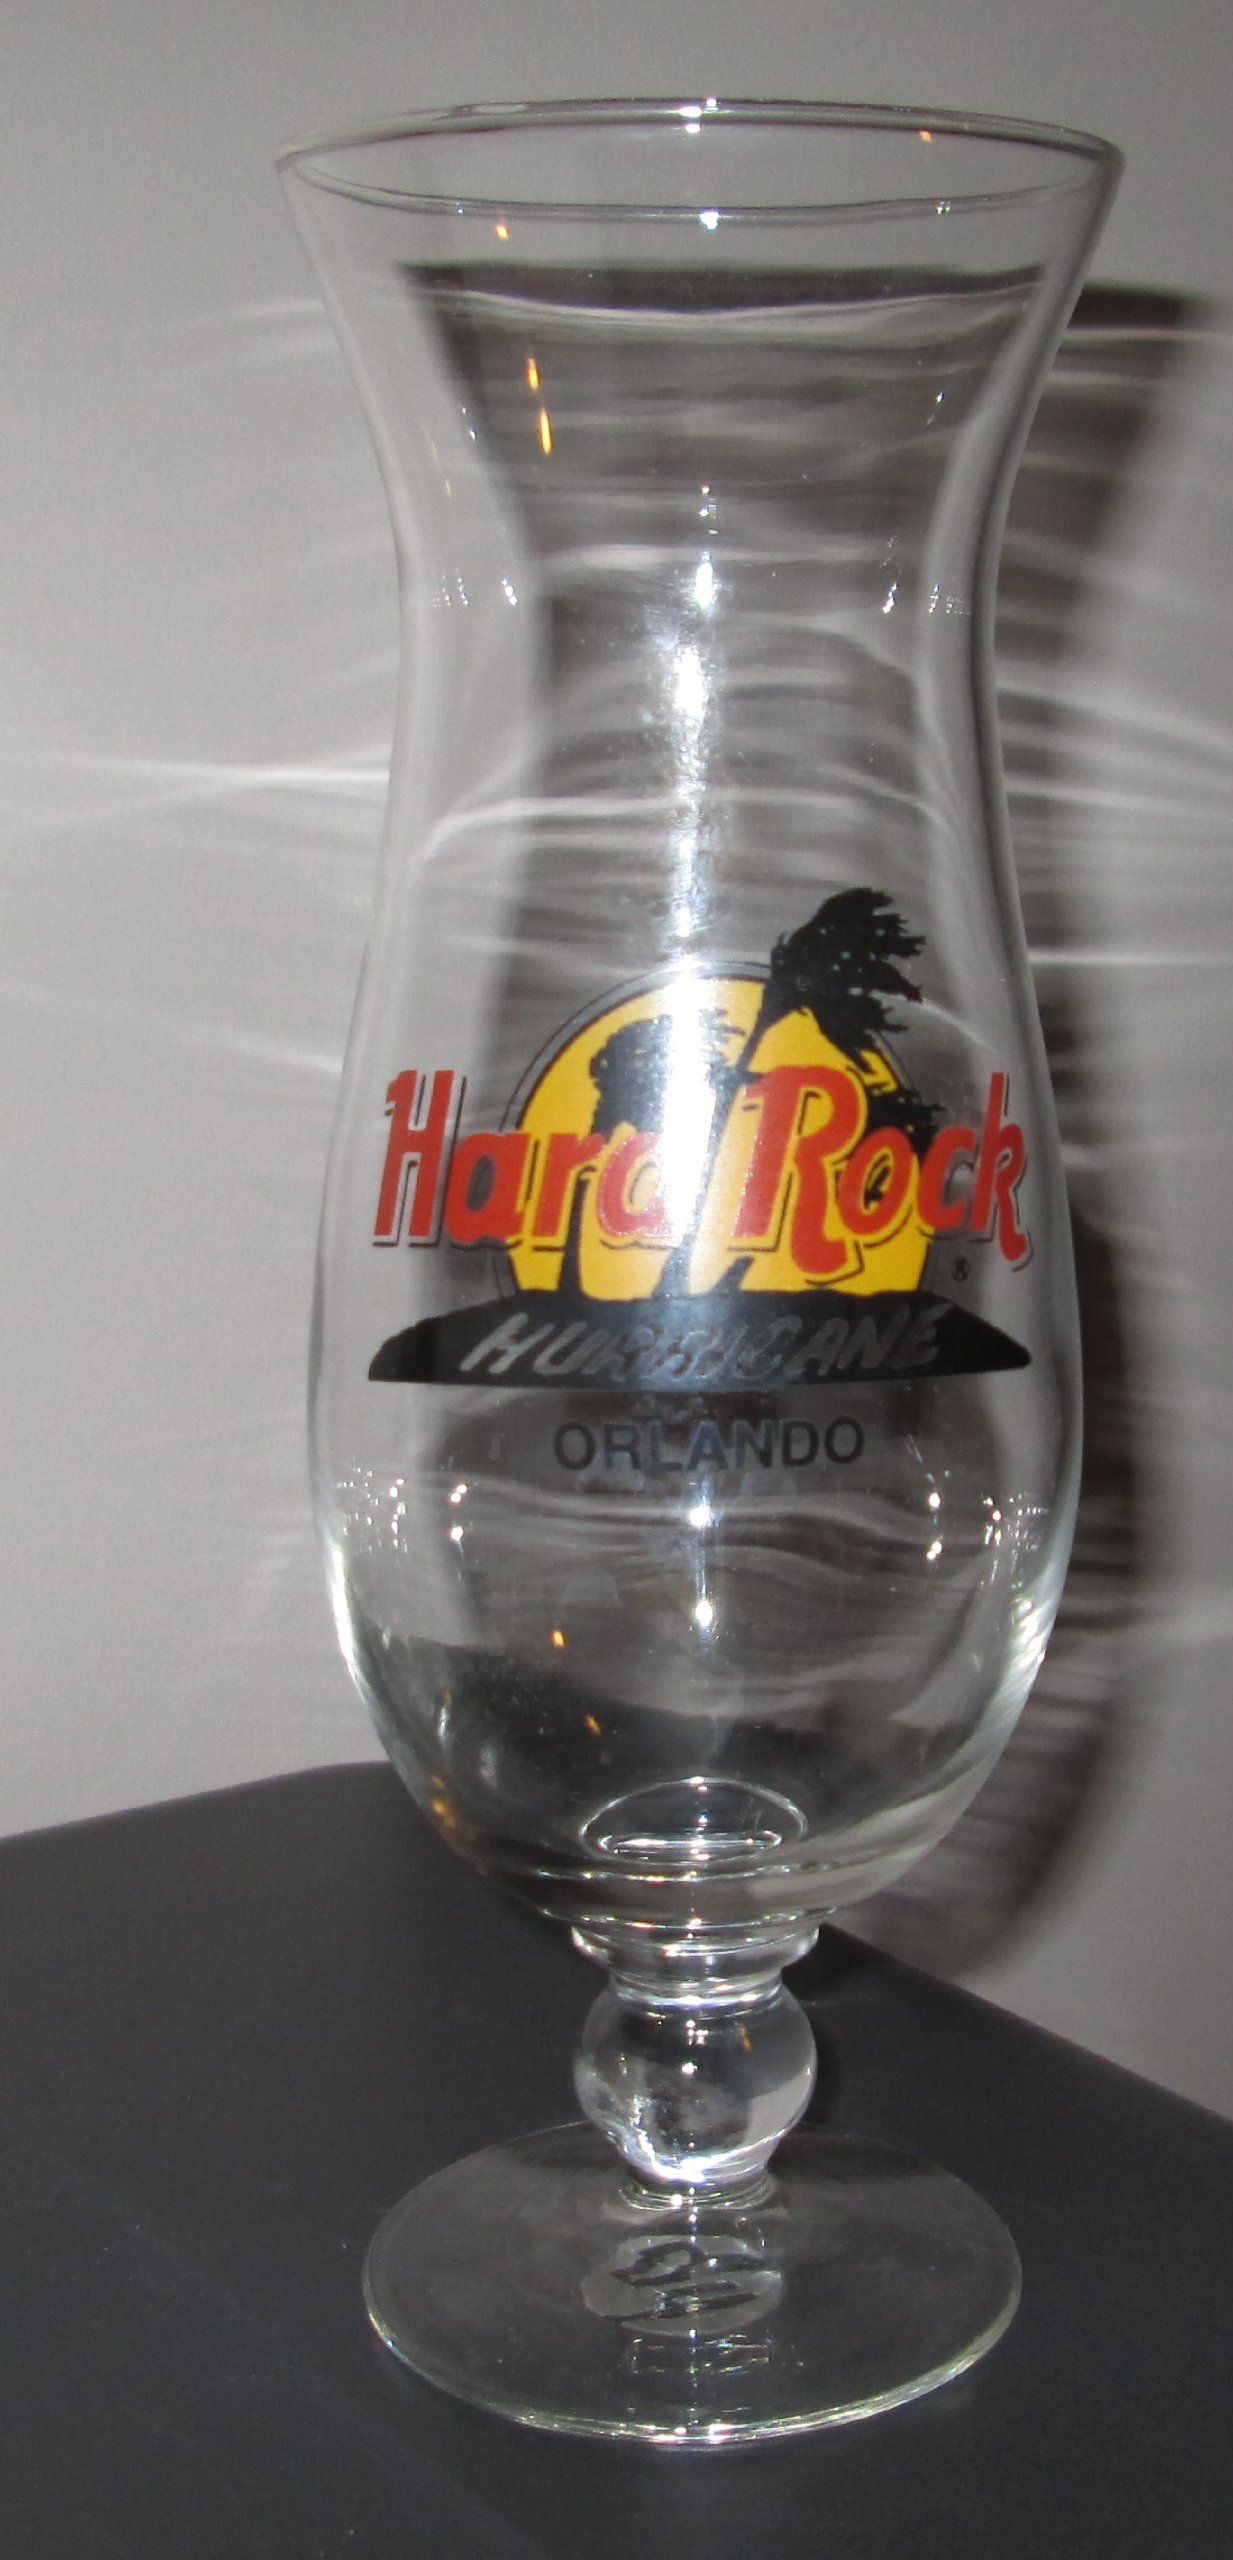 Hard Rock Hurricane Orlando Glass